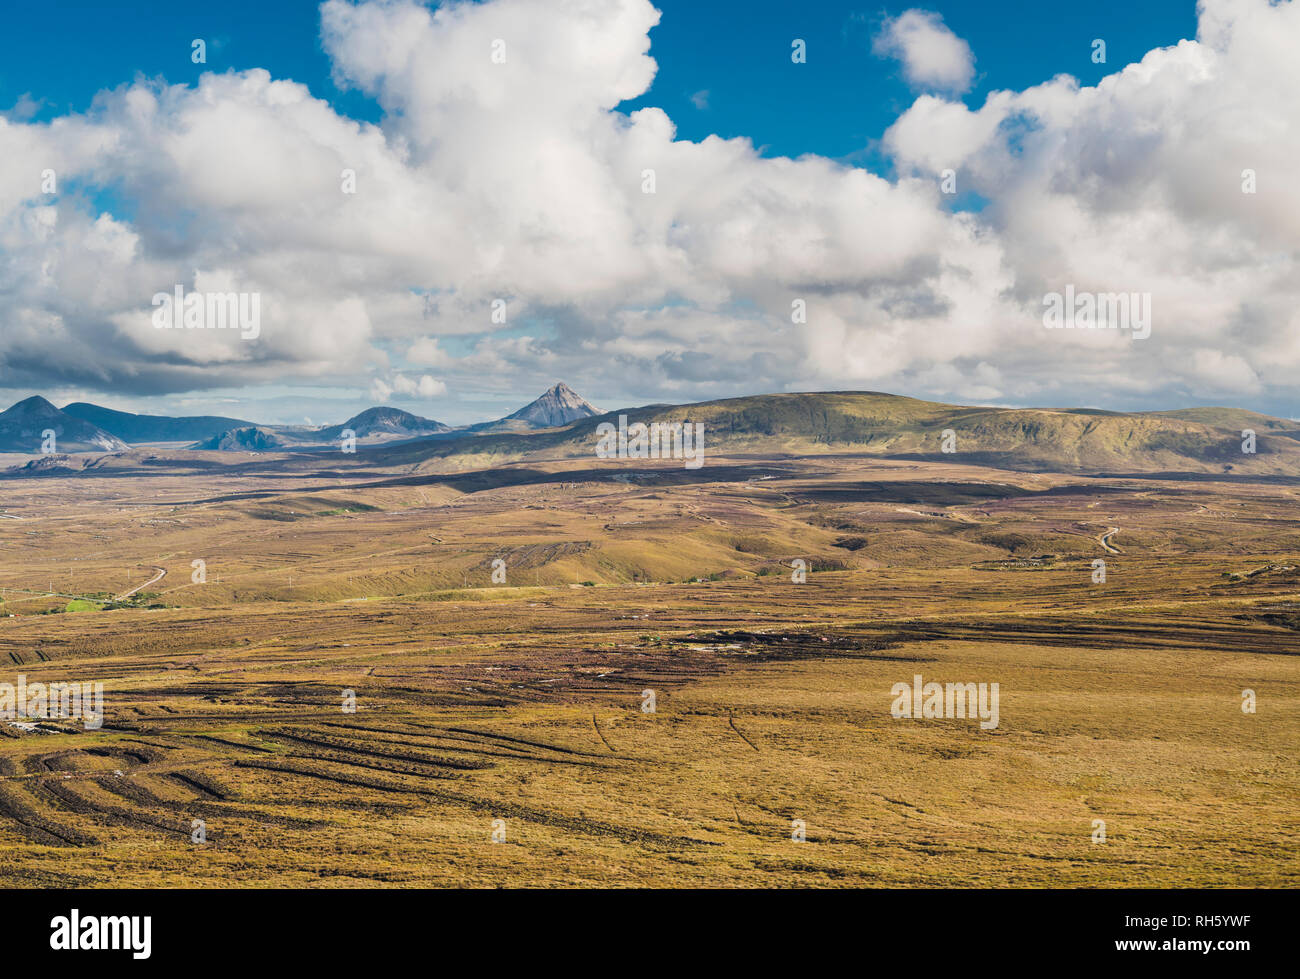 Panorama from high on Cnoc Fola across the cut bogland towards the  Seven Sisters of the Derryveagh Mountains, County Donegal, Ireland - Stock Image